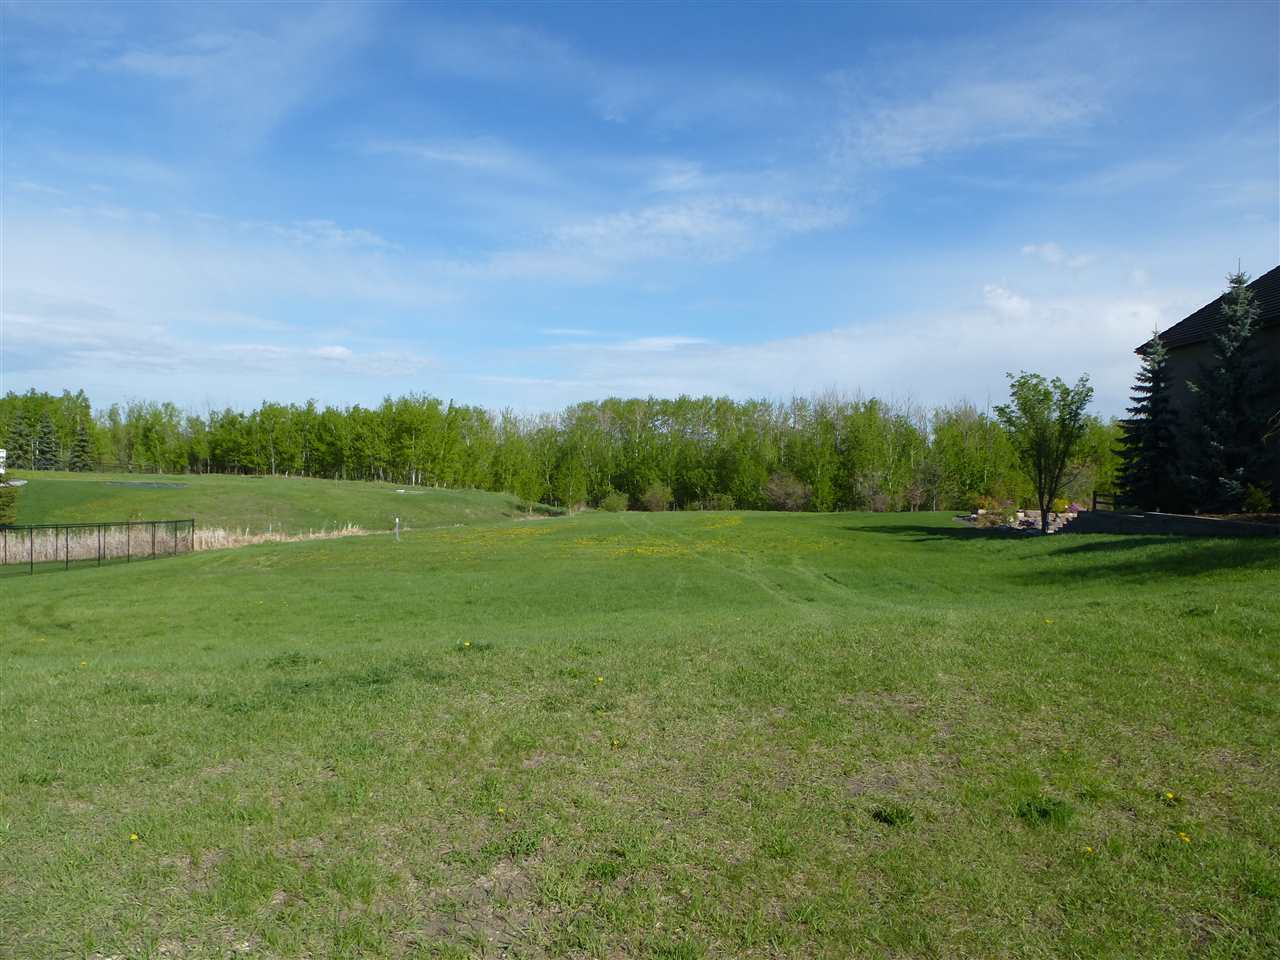 Photo 4: 60 53217 RGE RD 263 Road: Rural Parkland County Rural Land/Vacant Lot for sale : MLS(r) # E4065068